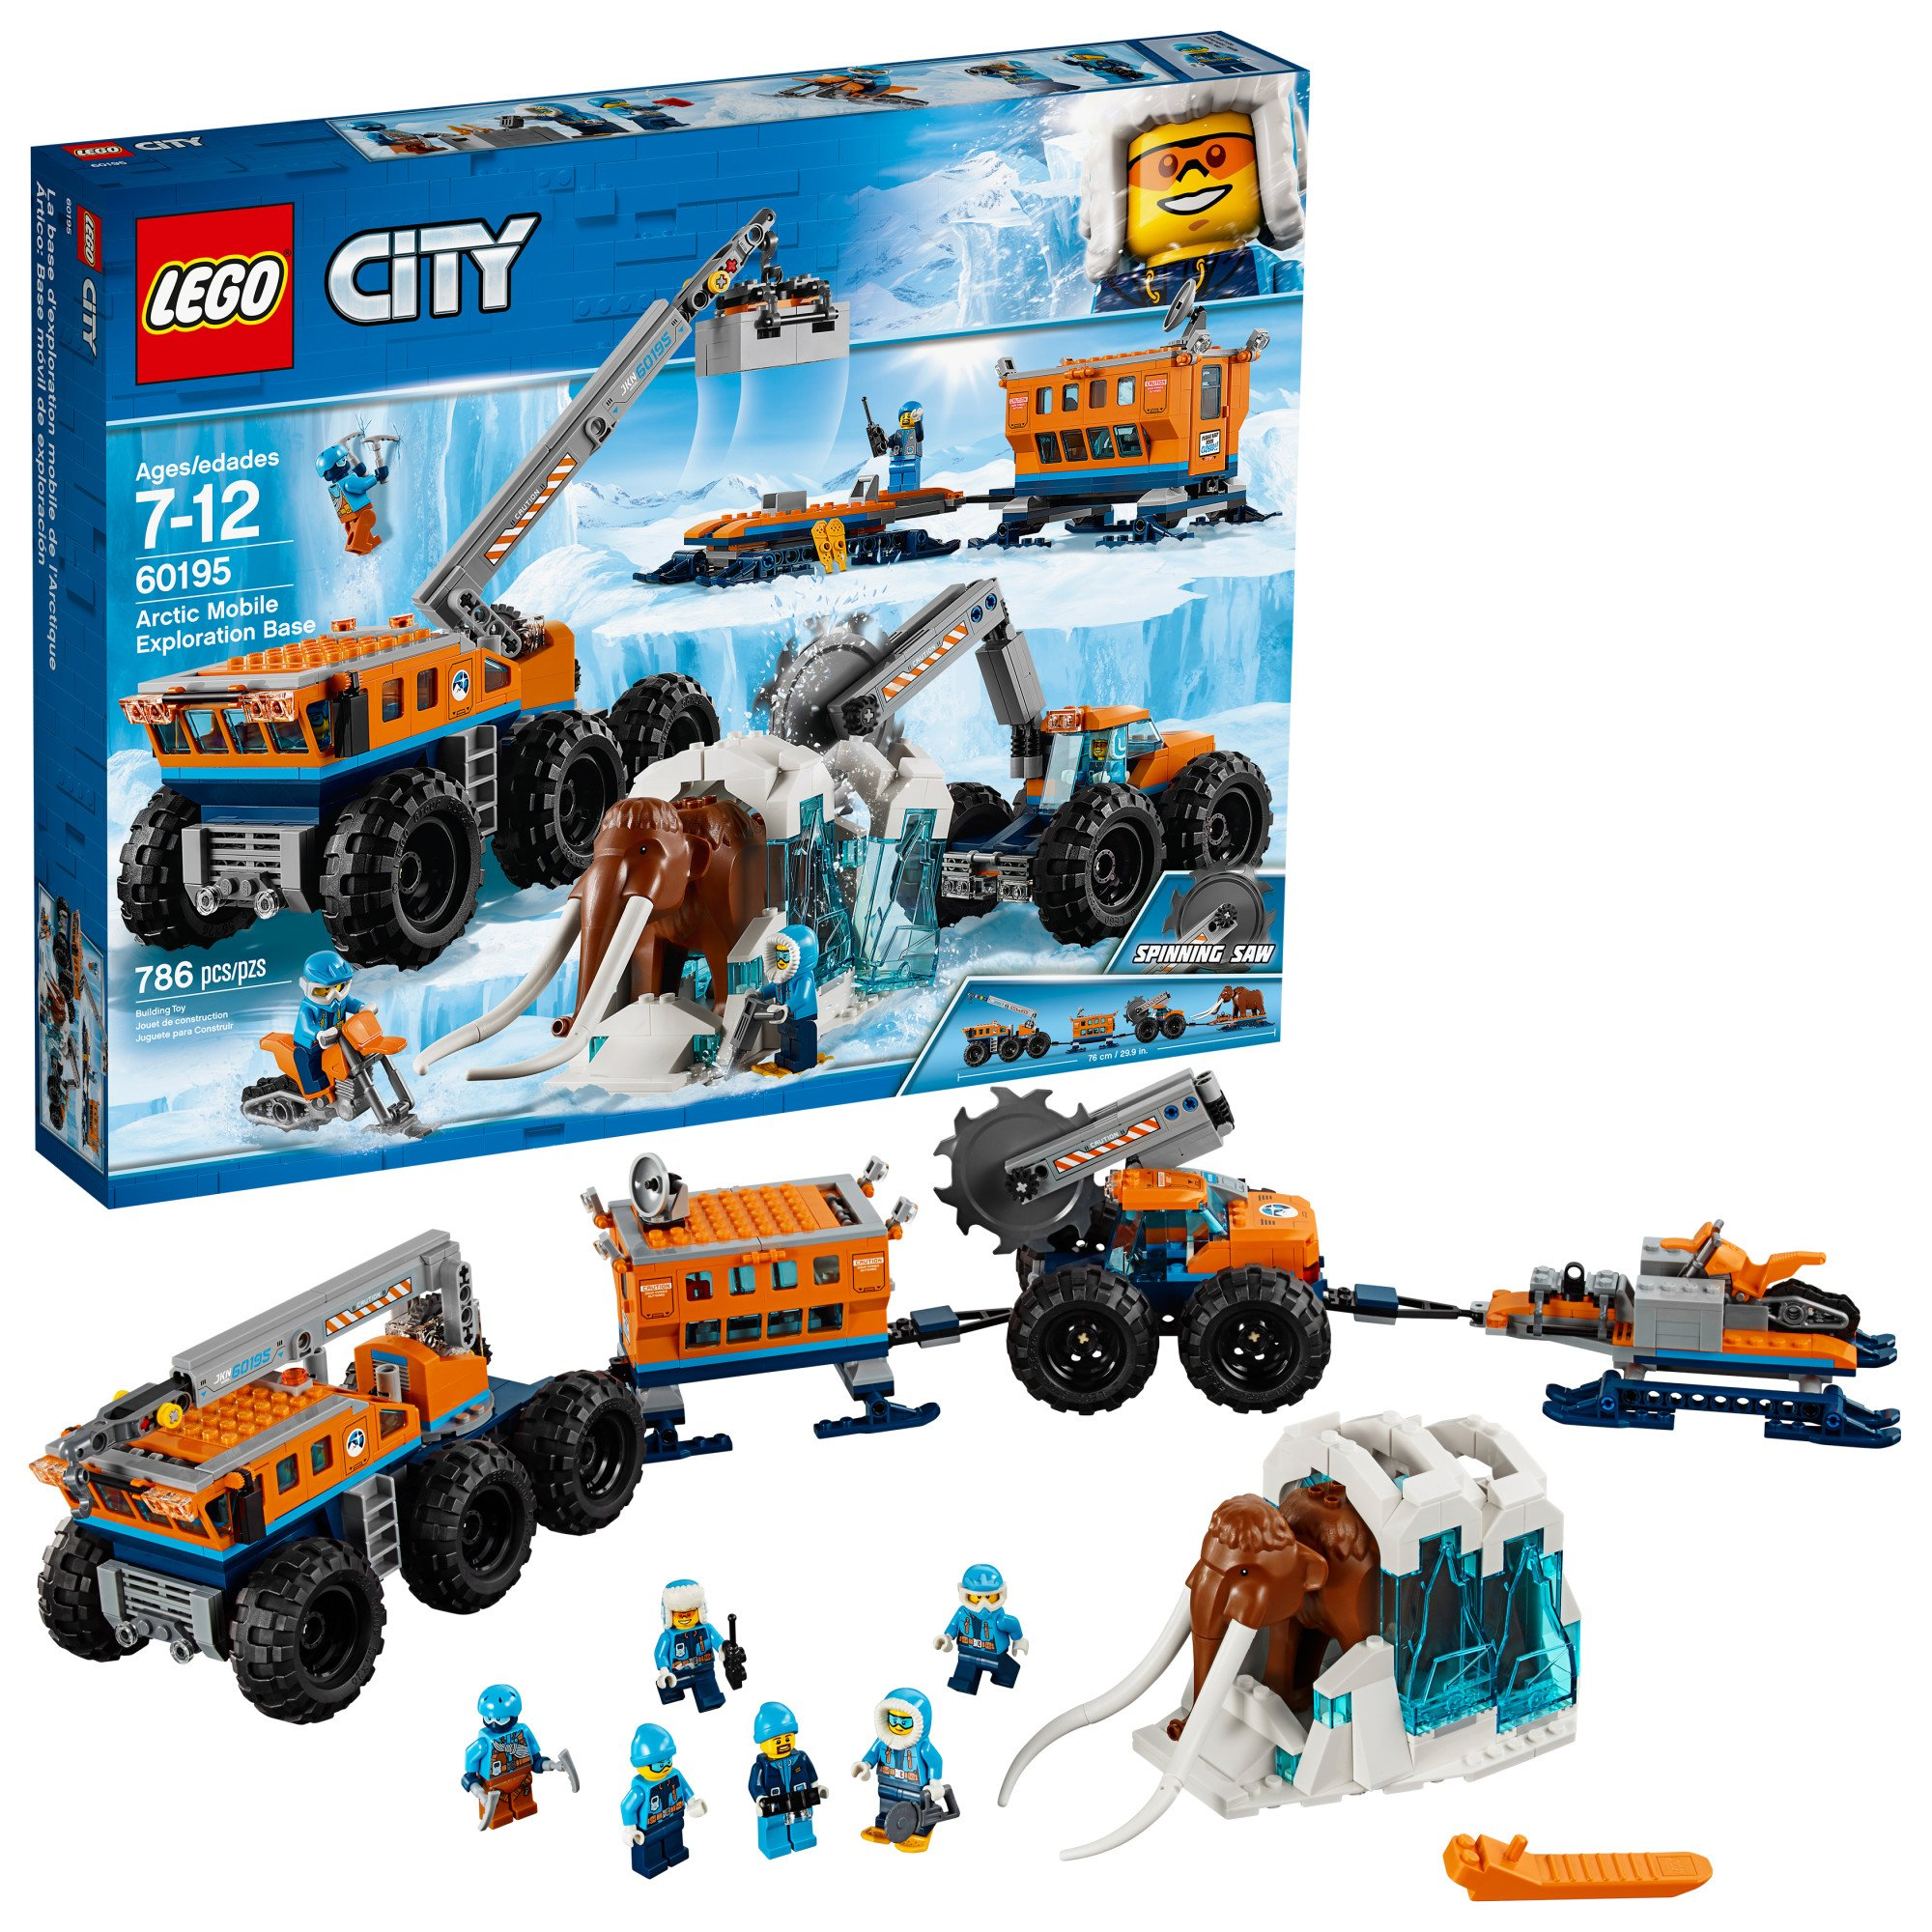 LEGO City Arctic Mobile Exploration Base 60195 Building Kit, Snowmobile Toy and Rescue Game (786 Pieces) by LEGO